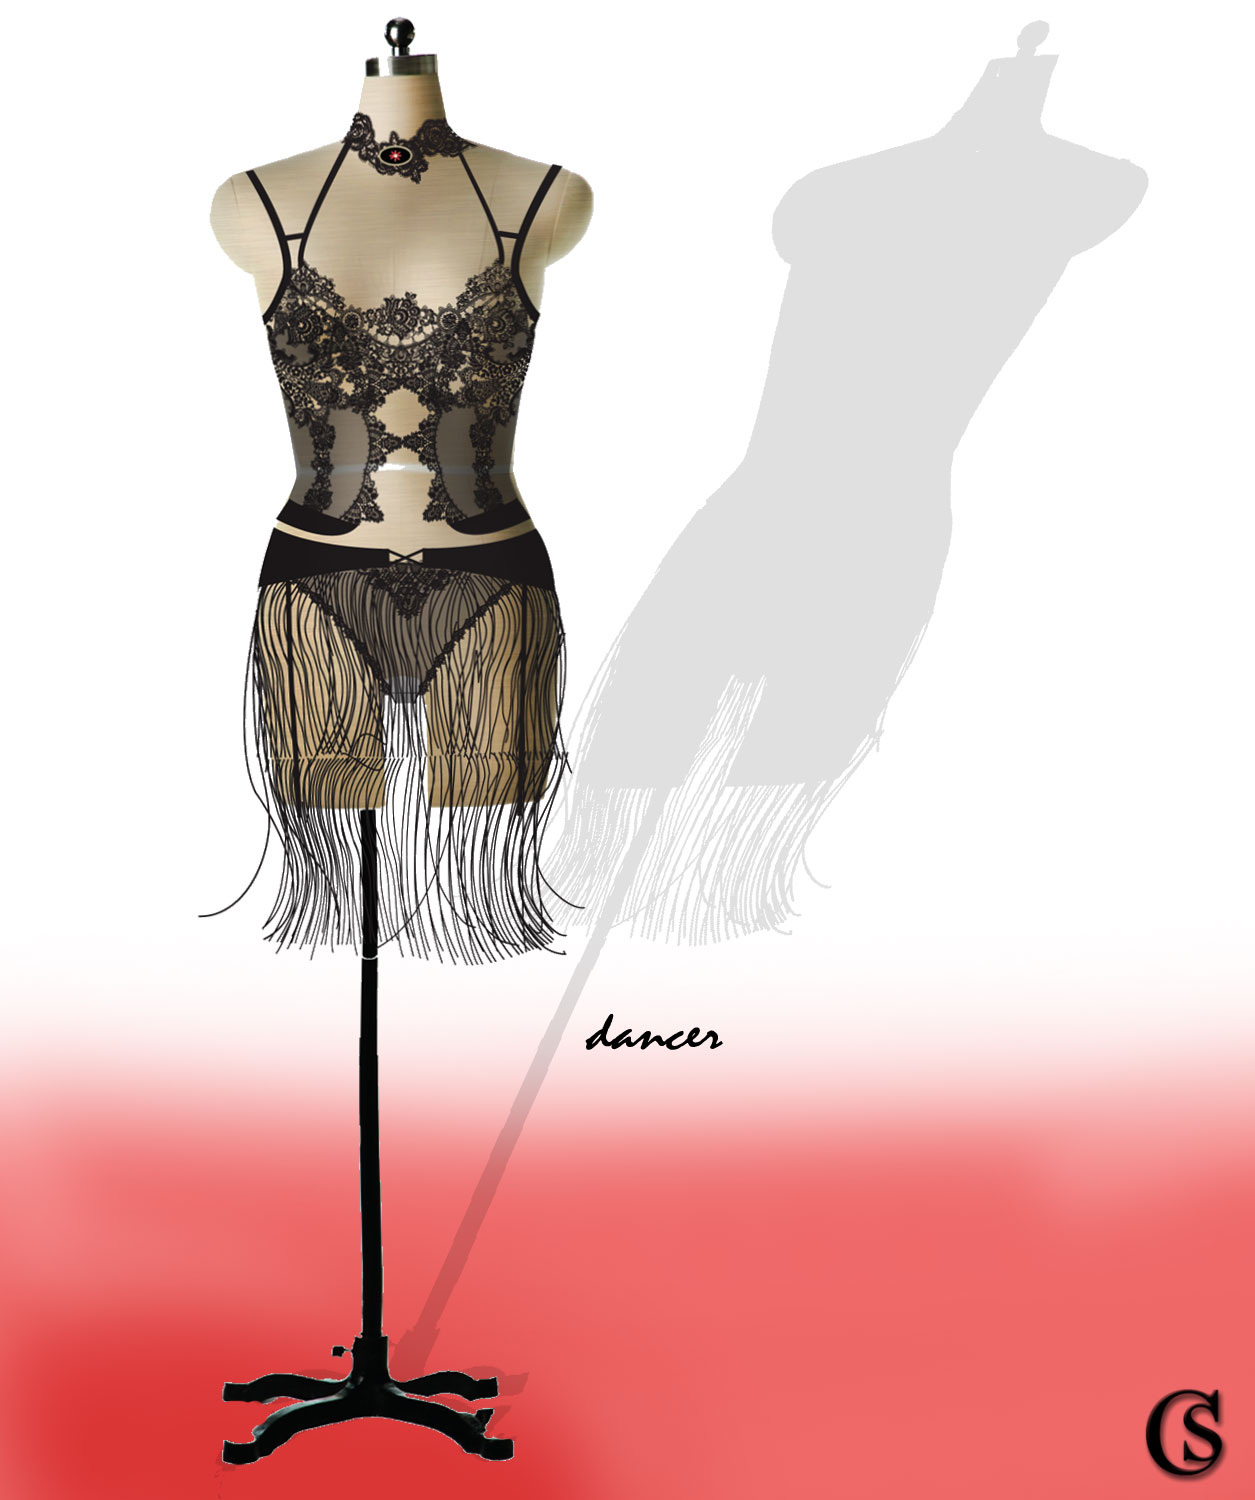 Fashion is lingerie trends for 2020